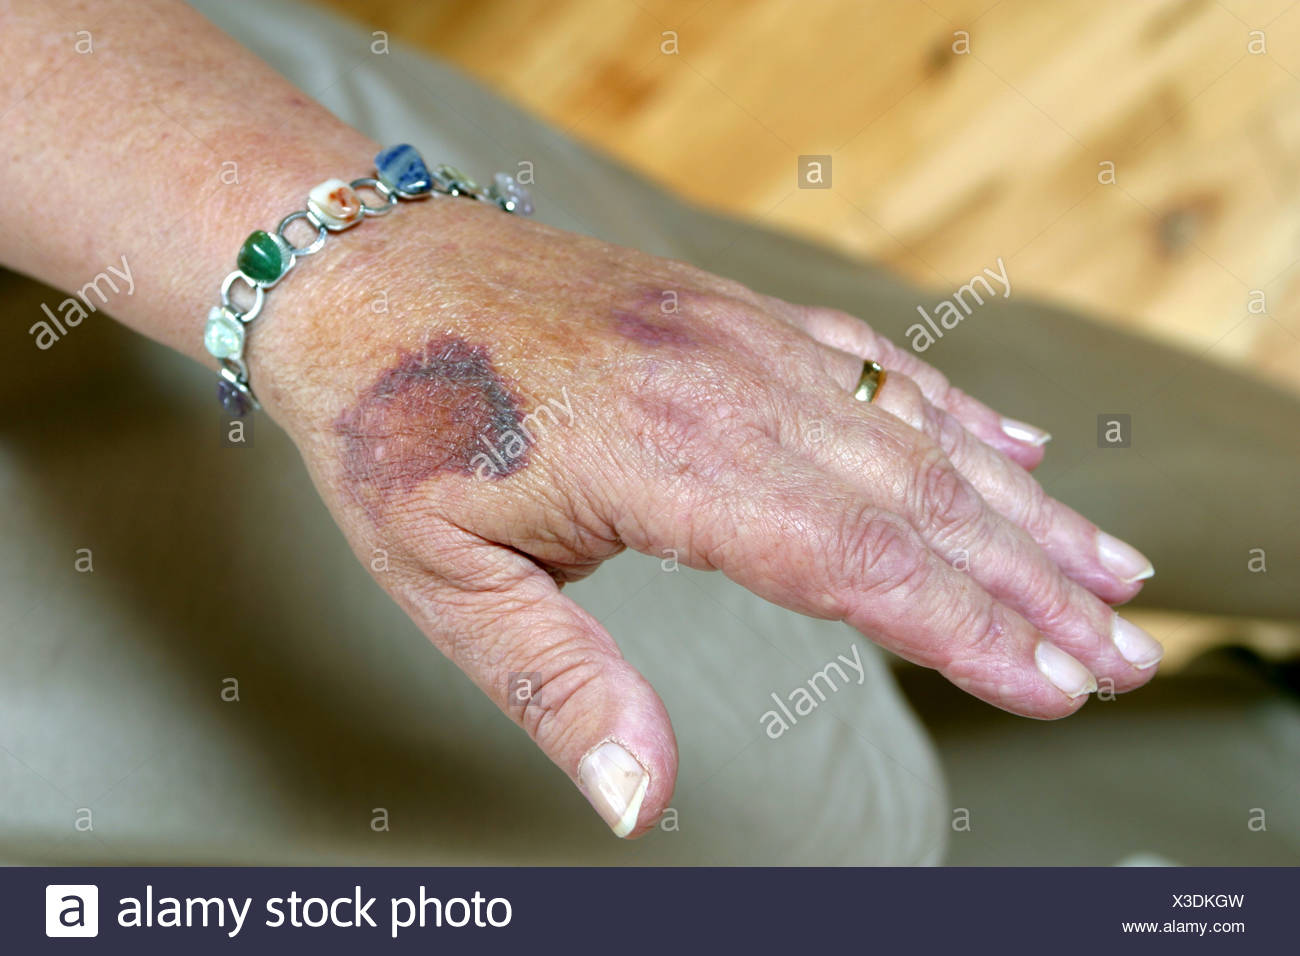 Bruised Hands Stock Photos & Bruised Hands Stock Images - Alamy